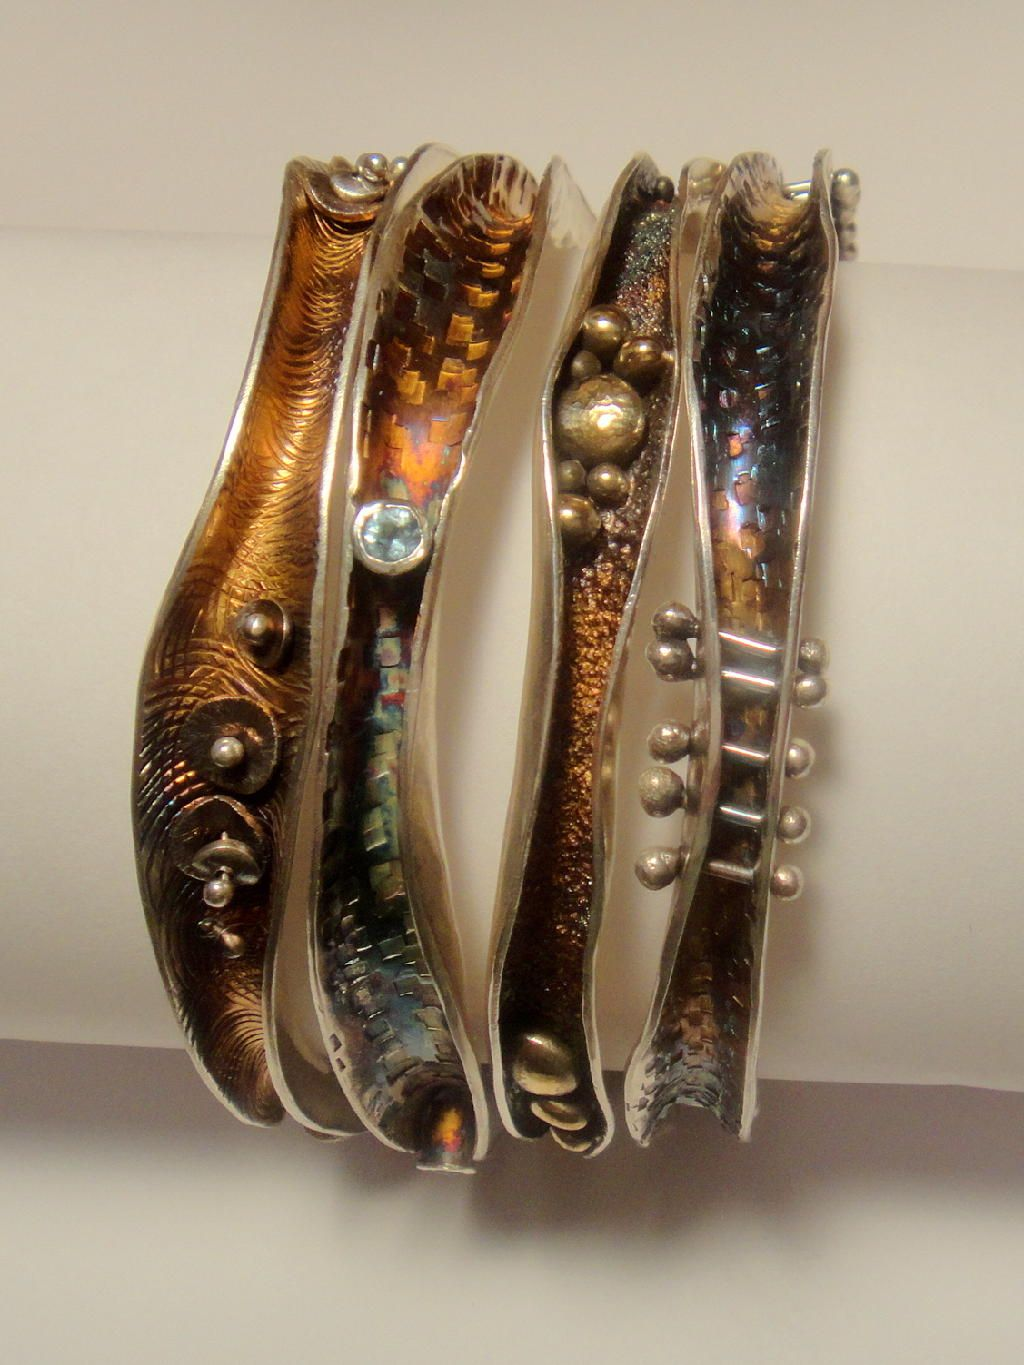 Robyn cornelius wave bangles sterling silver little rock for Handley rock jewelry supply vancouver wa